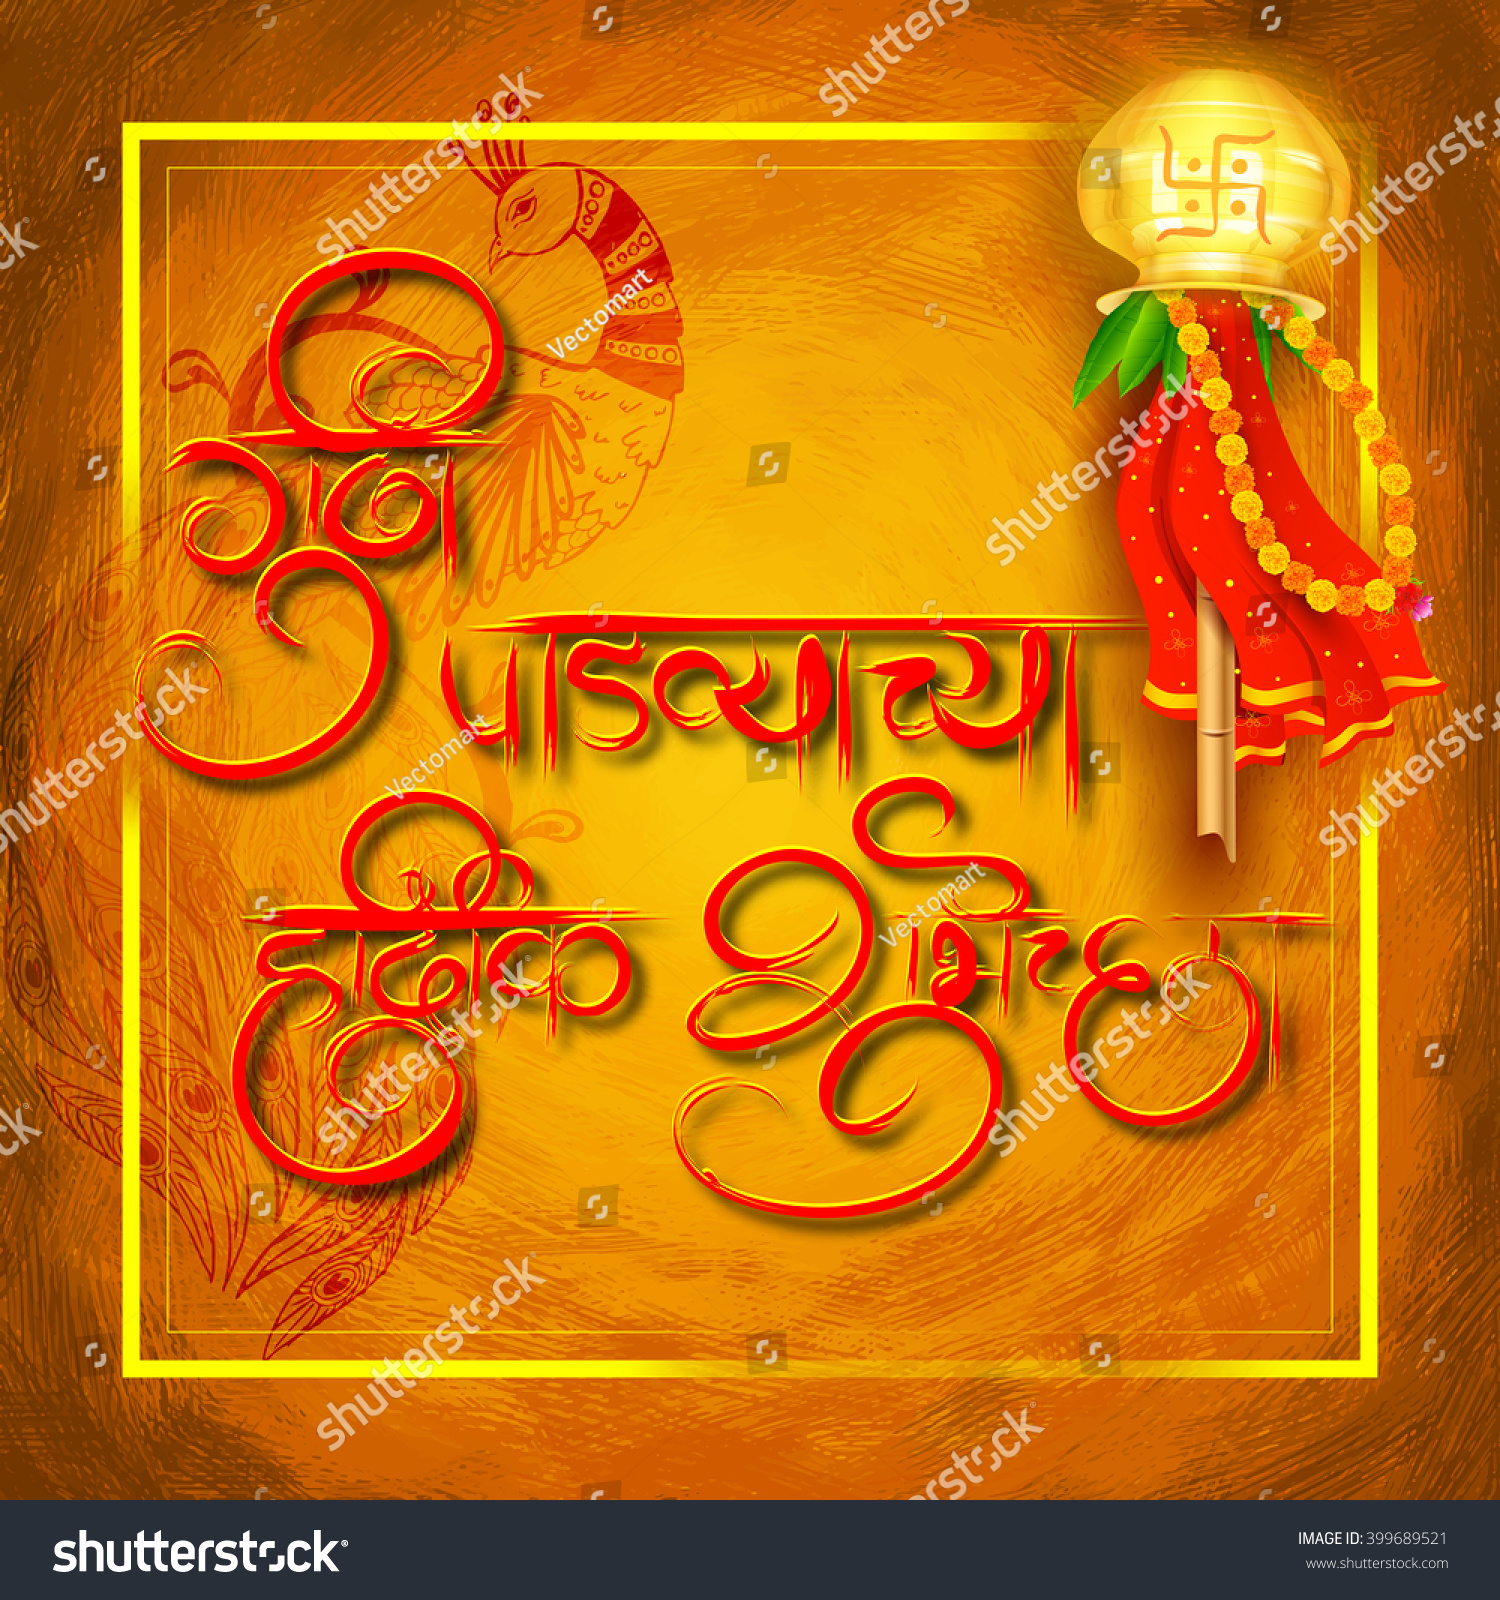 Illustration gudi padwa lunar new year stock vector 399689521 illustration of gudi padwa lunar new year celebration of india with message in marathi kristyandbryce Image collections